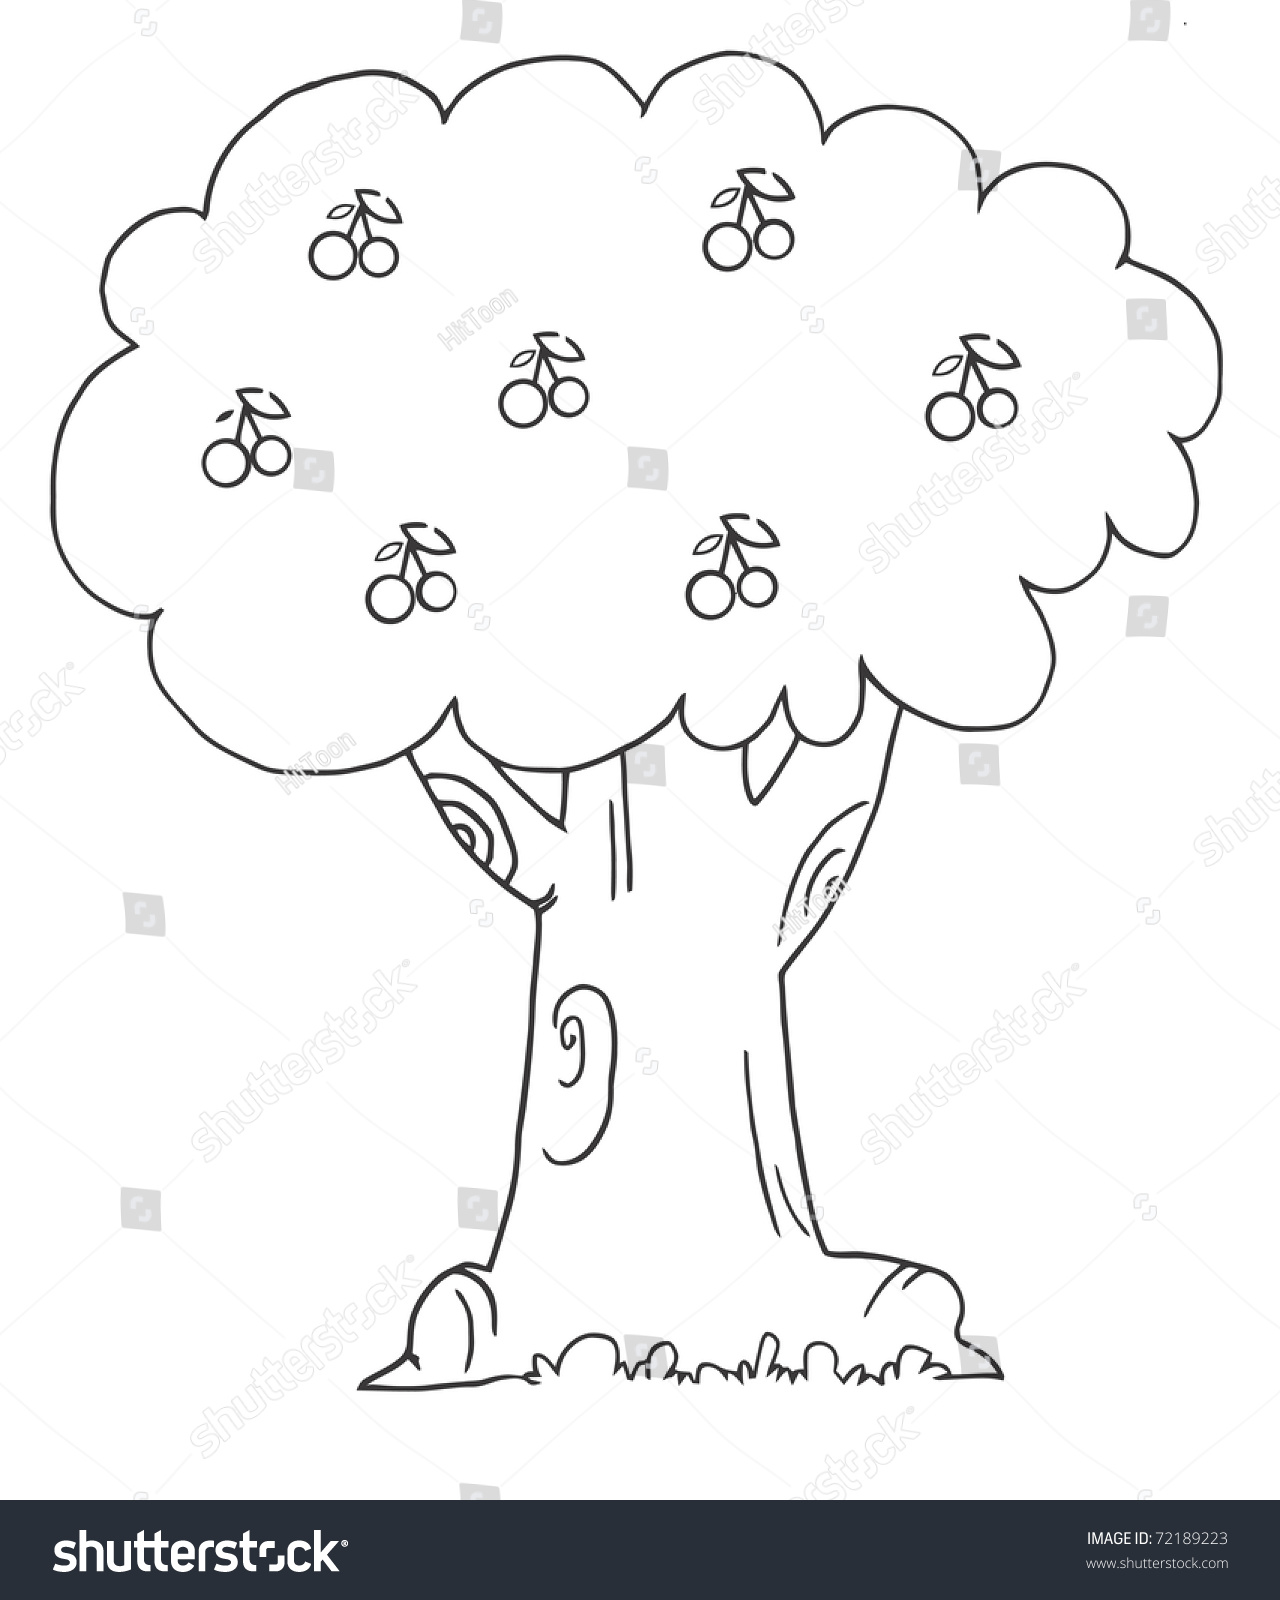 coloring page outline cherry tree stock illustration 72189223